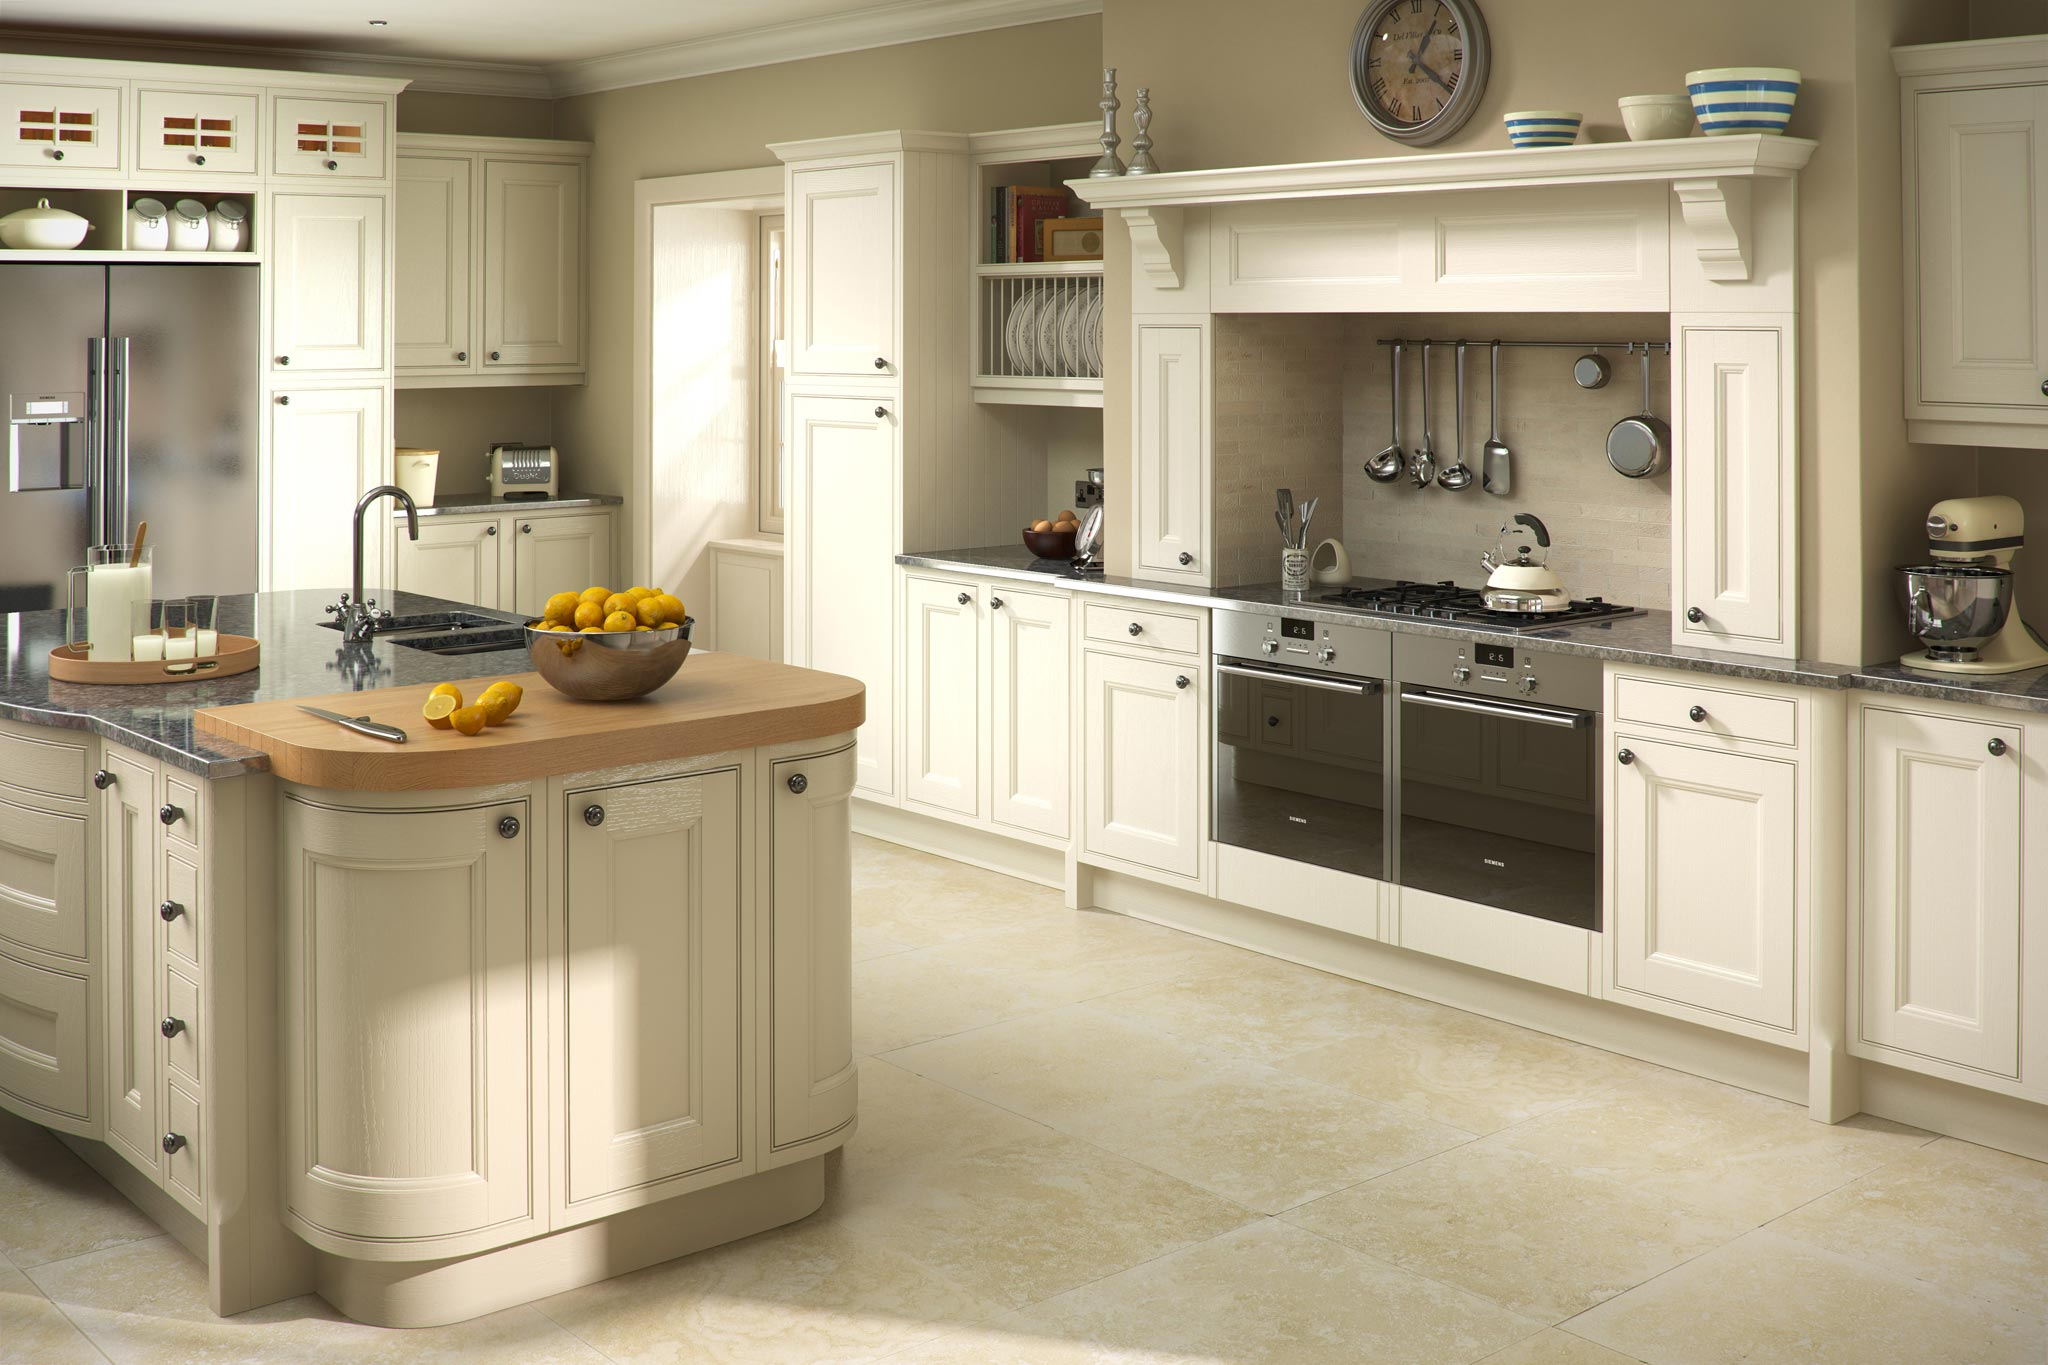 Modern White And Red Finish Bespoke Kitchens. Traditional Oak Putty Finish